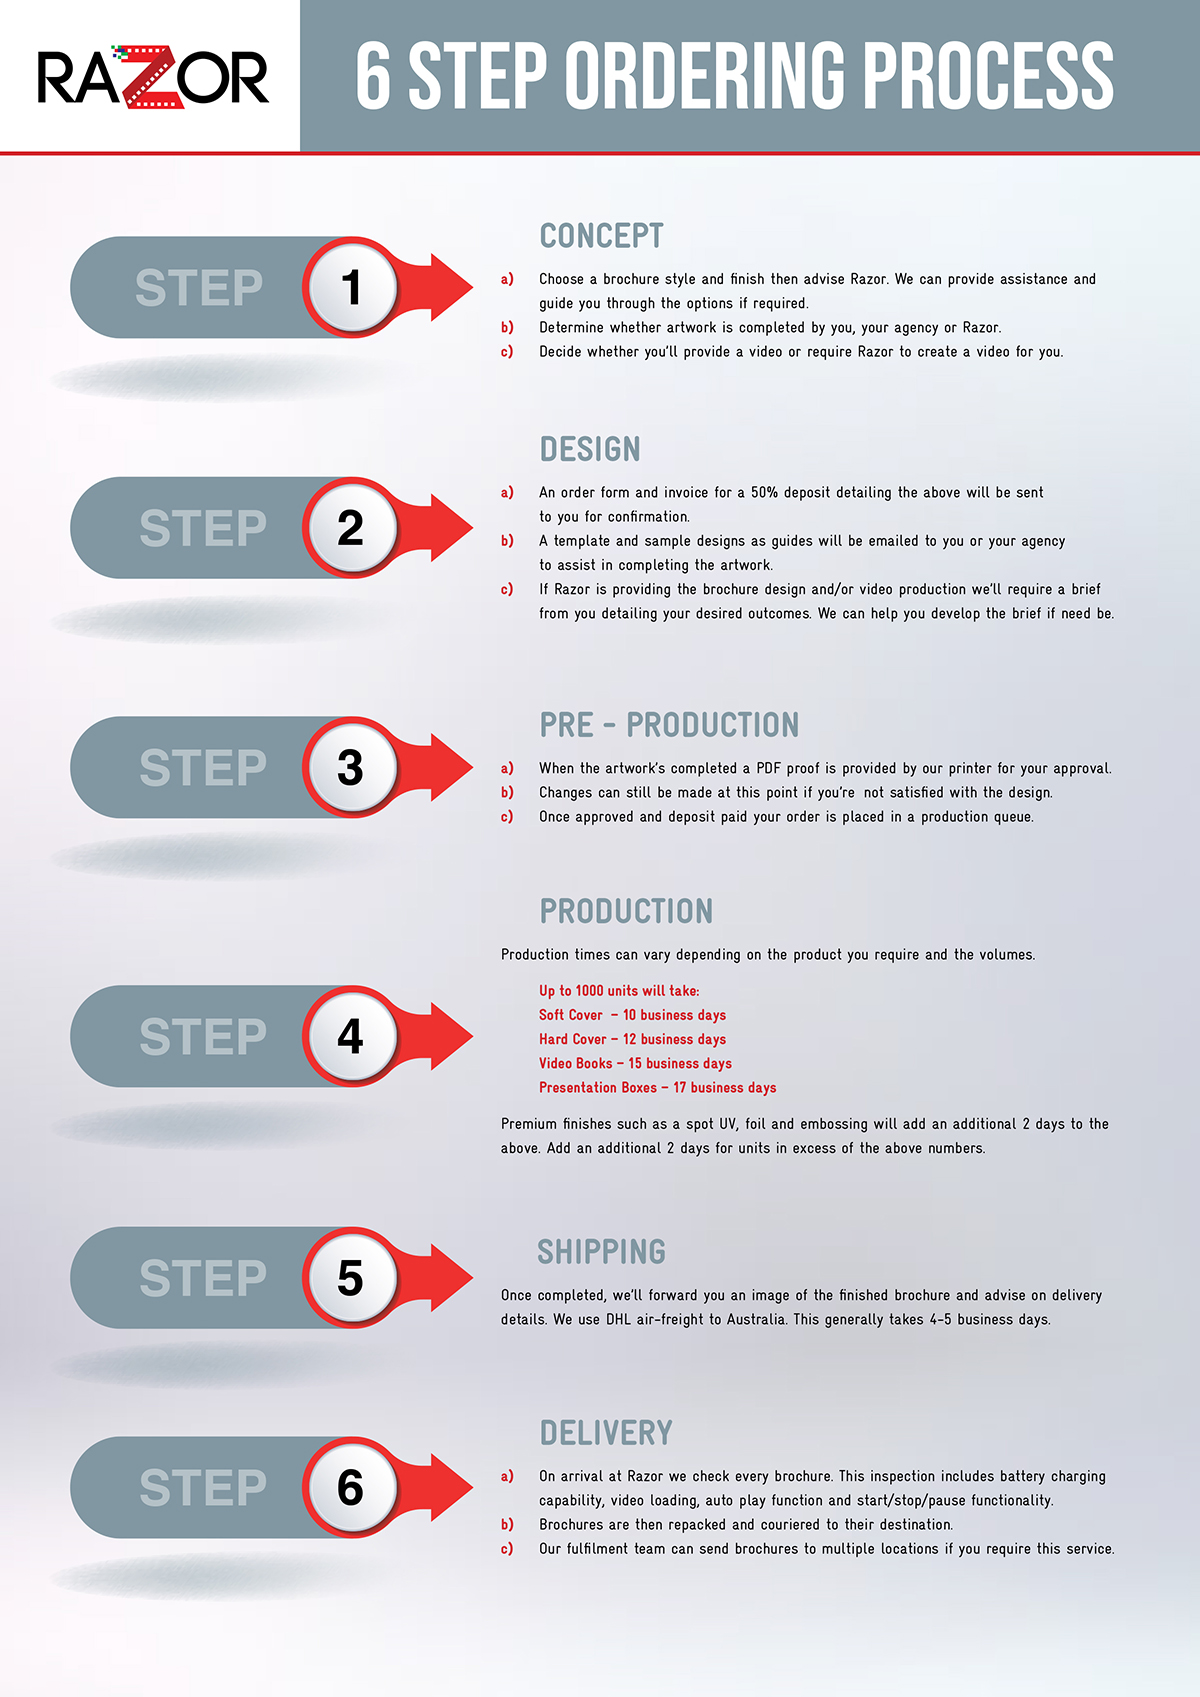 Razor 6 steps to a great video brochure